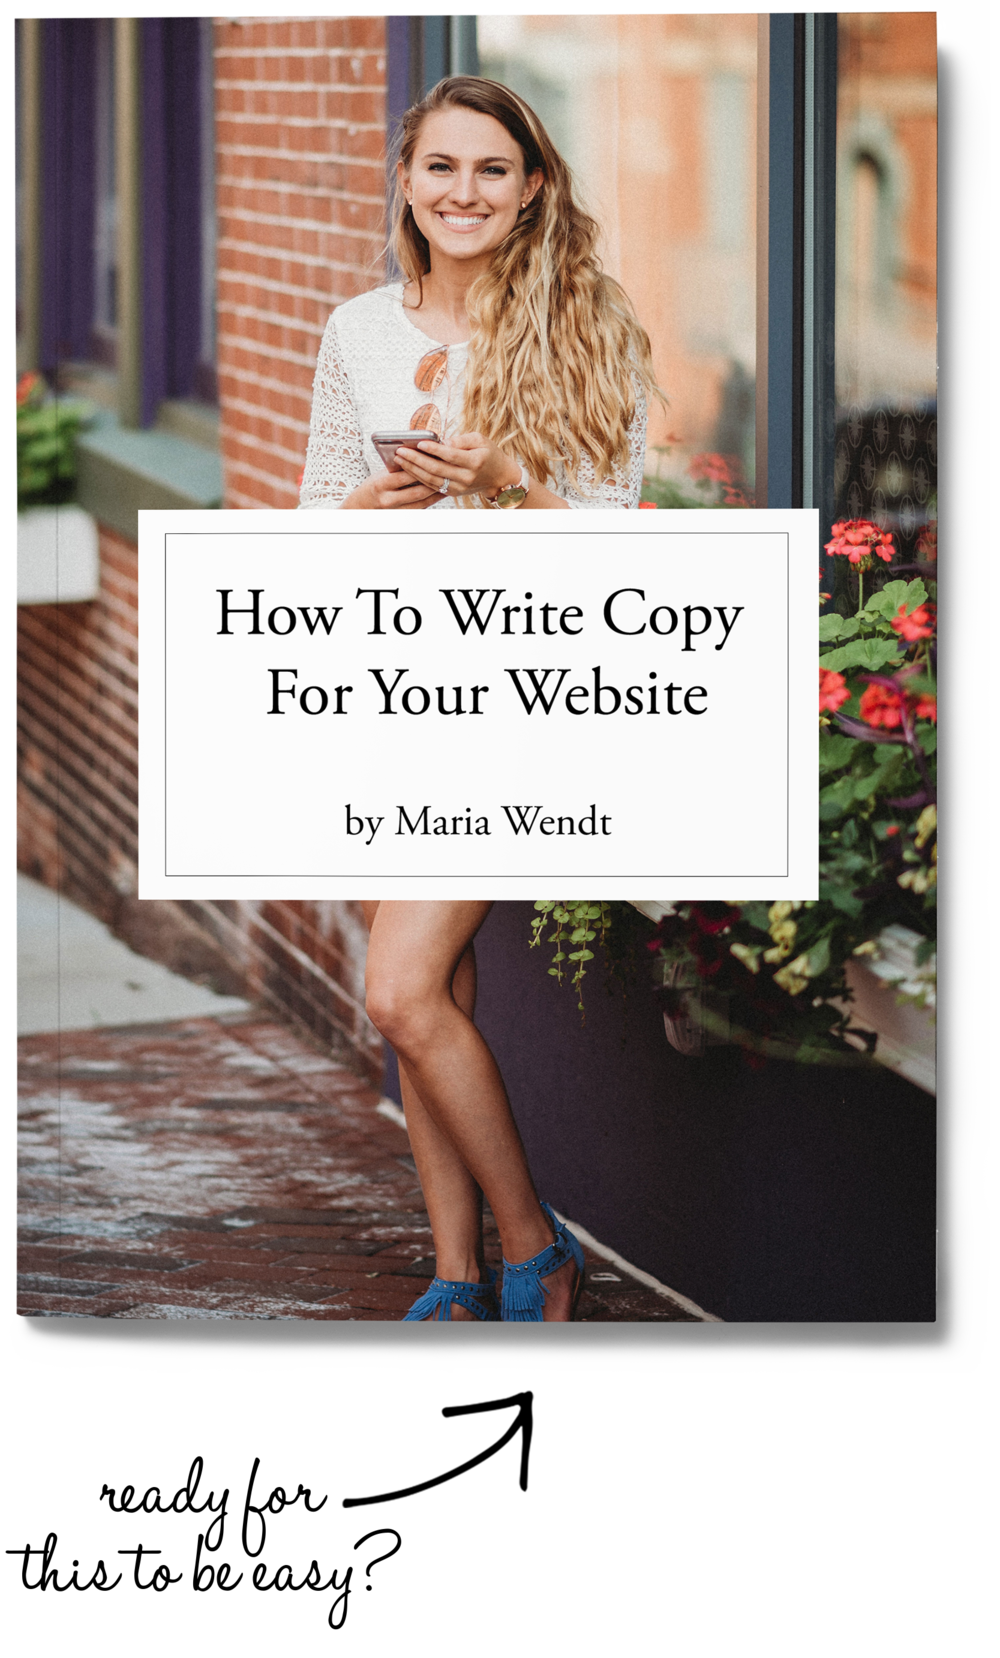 cover-image-mockup-training-copy.png